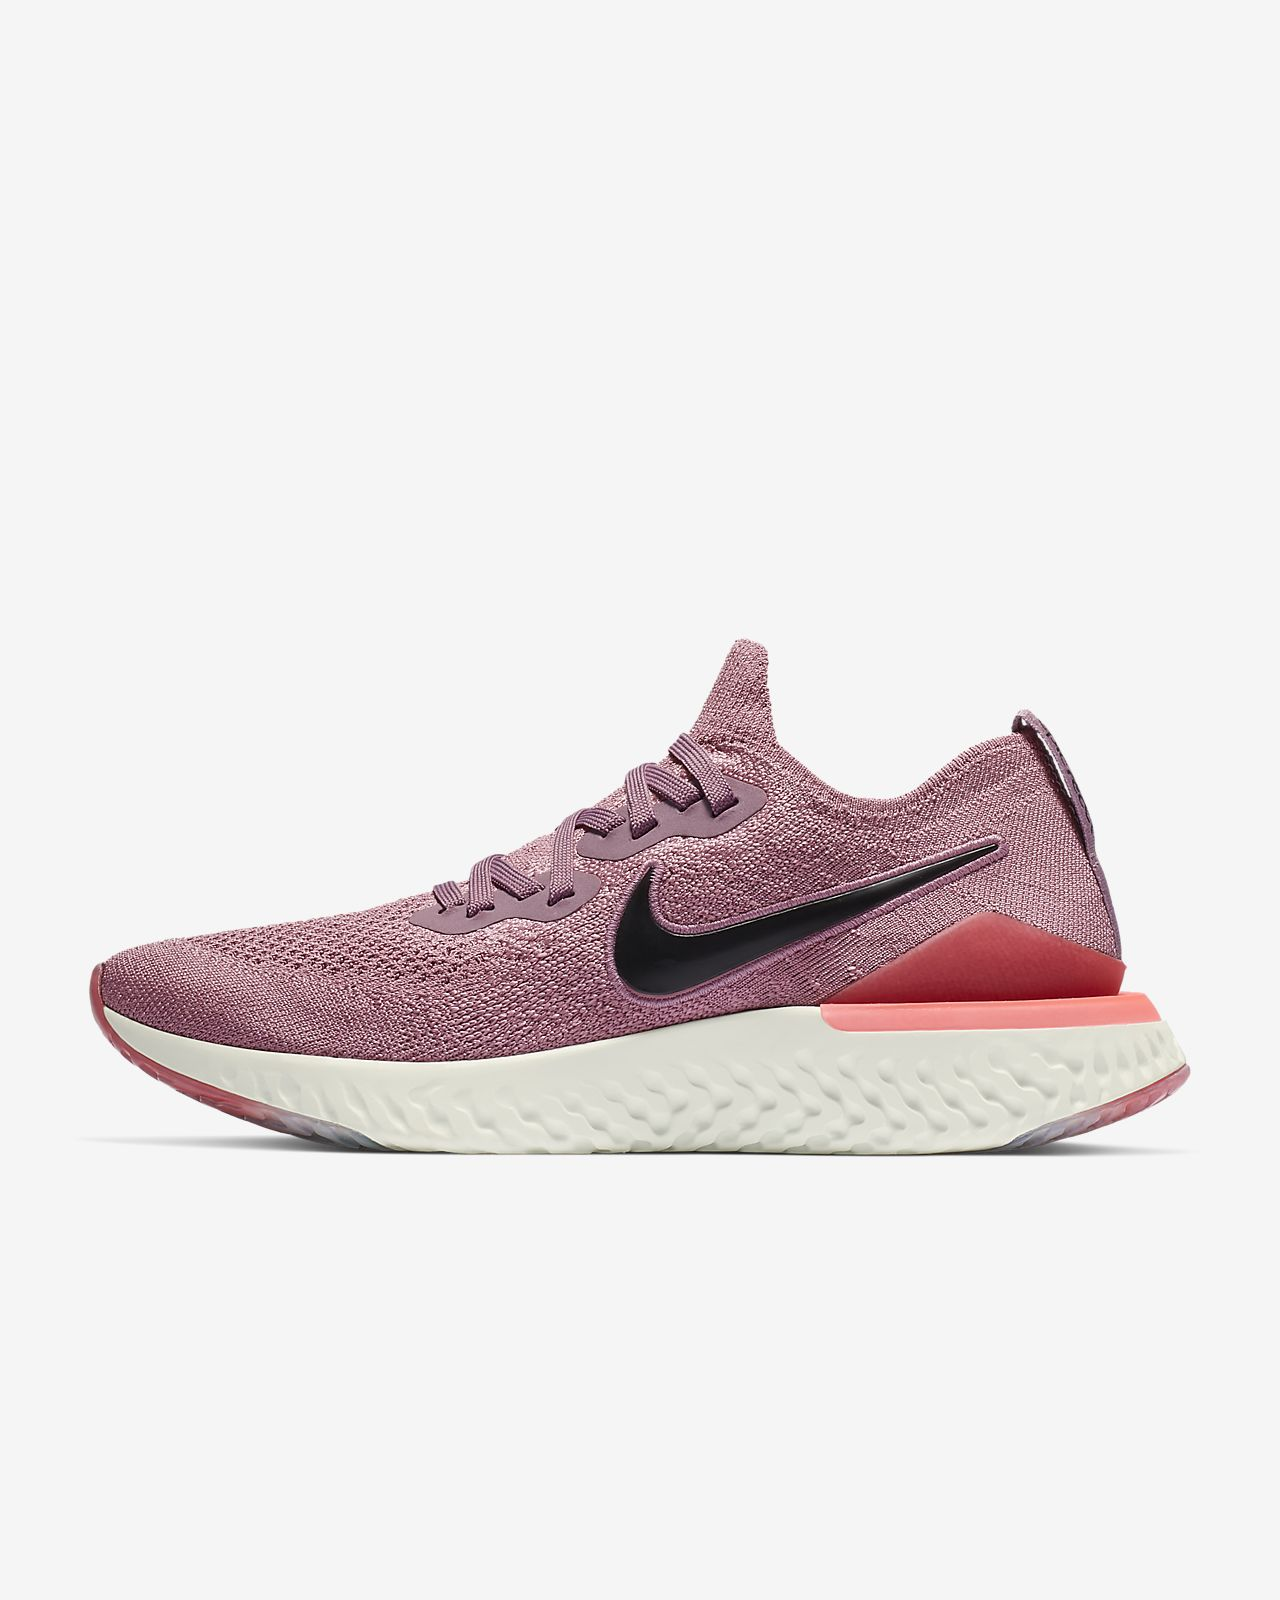 Nike Epic React Flyknit GS Nike Epic React Flyknit 2 Women's Running Shoe. Nike.com